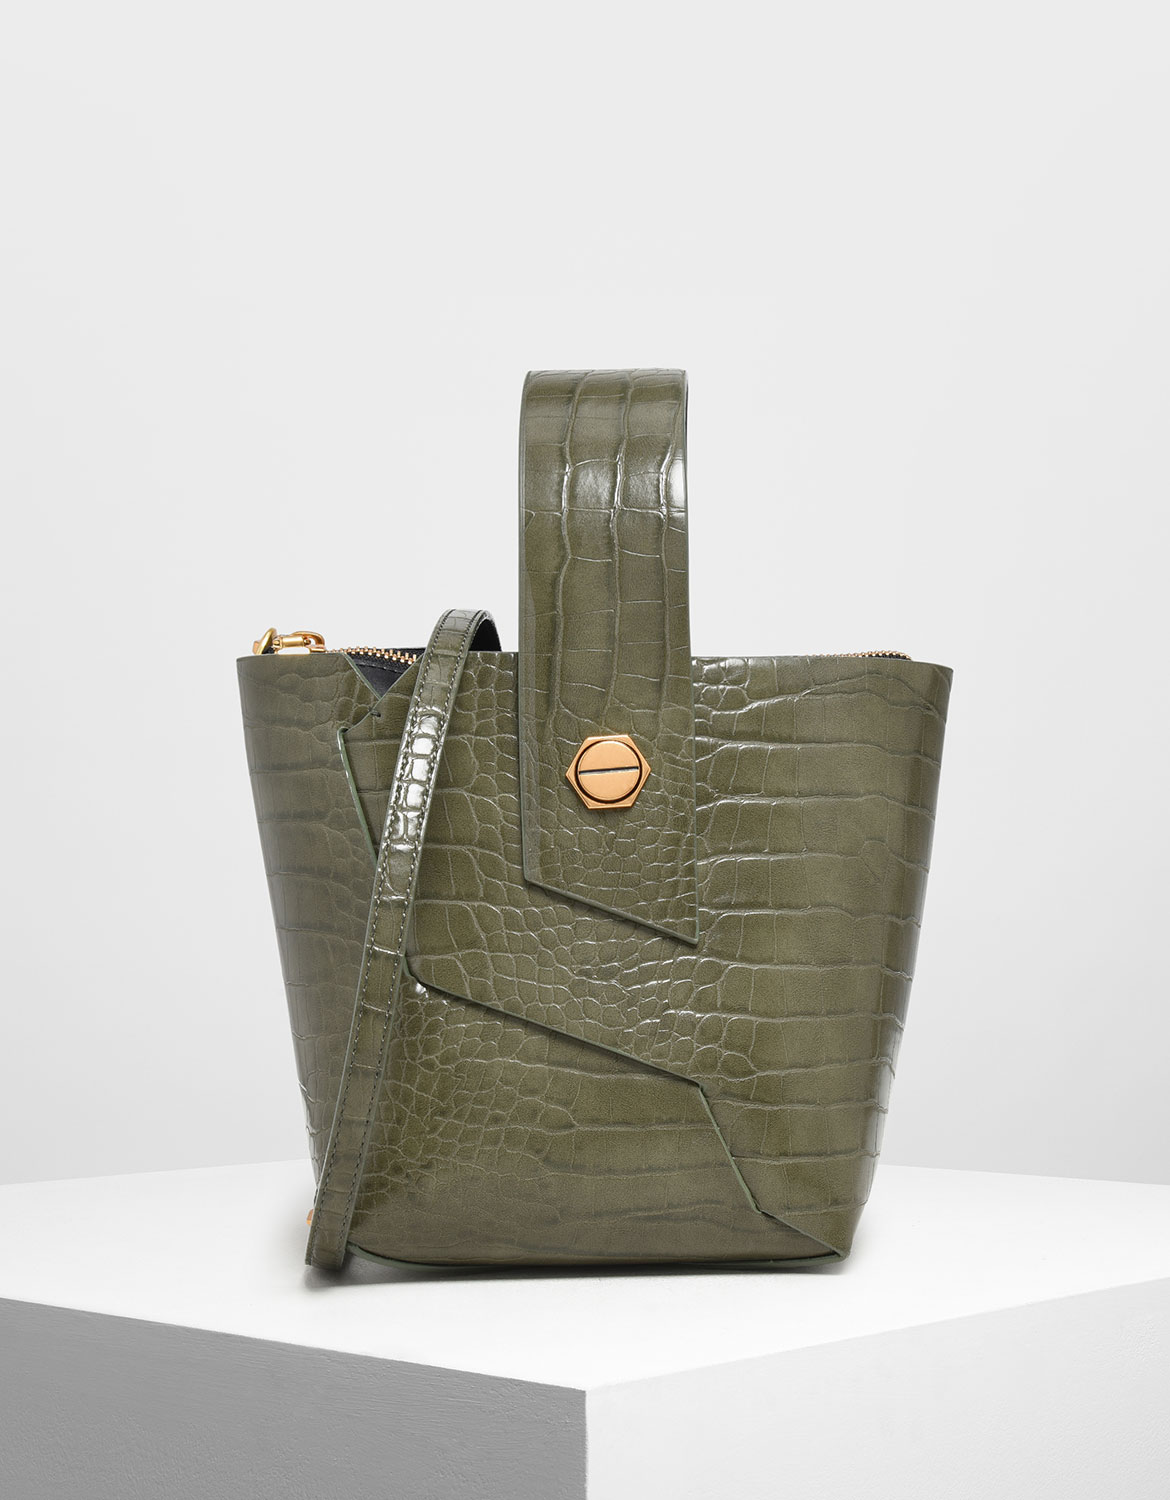 Women's Croc-Effect Wristlet Handle Bucket Bag in olive - CHARLES & KEITH